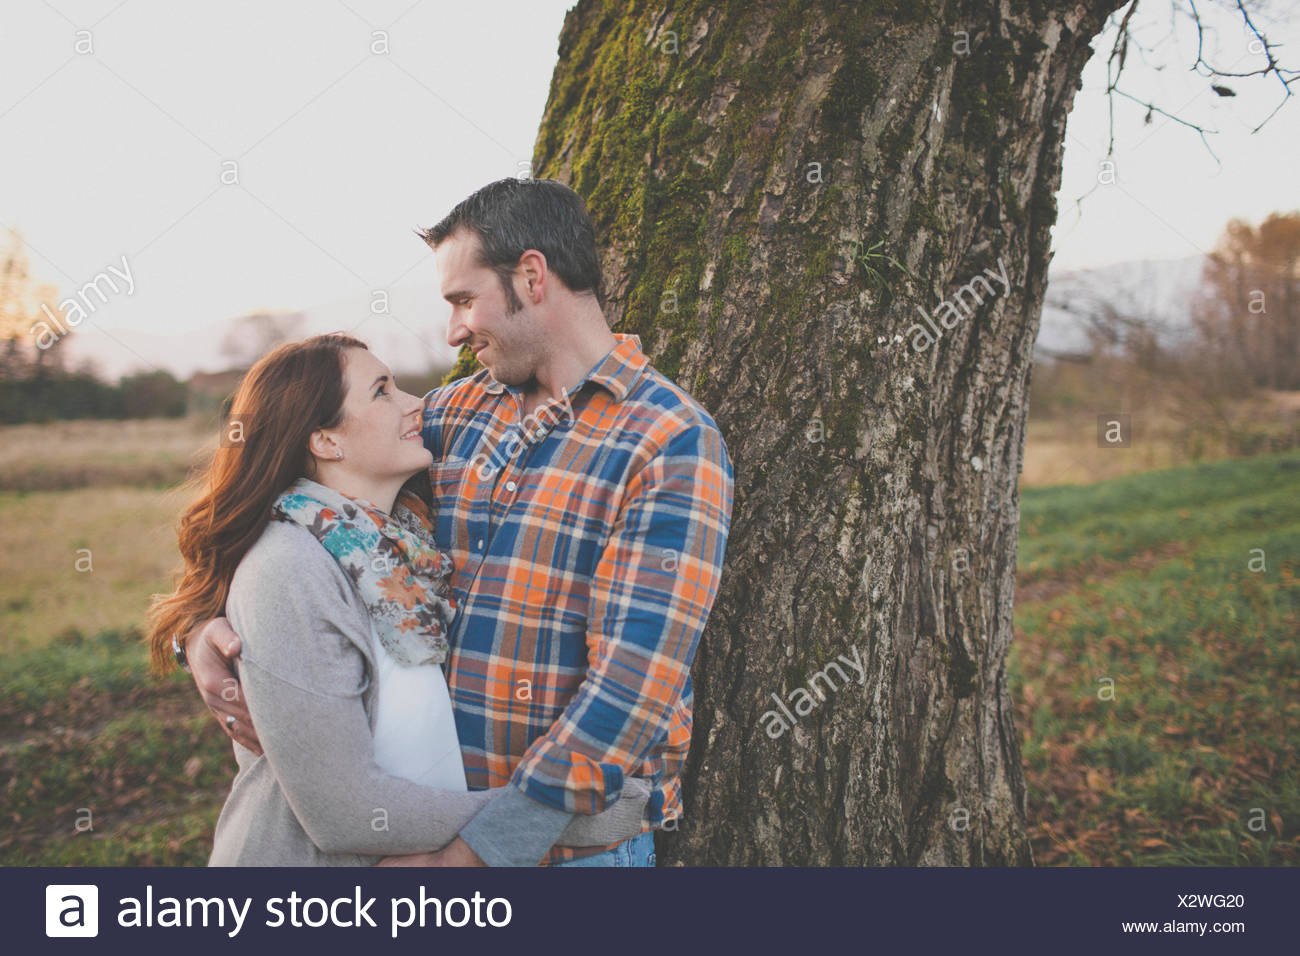 Portrait of a husband and wife smiling at each other. - Stock Image